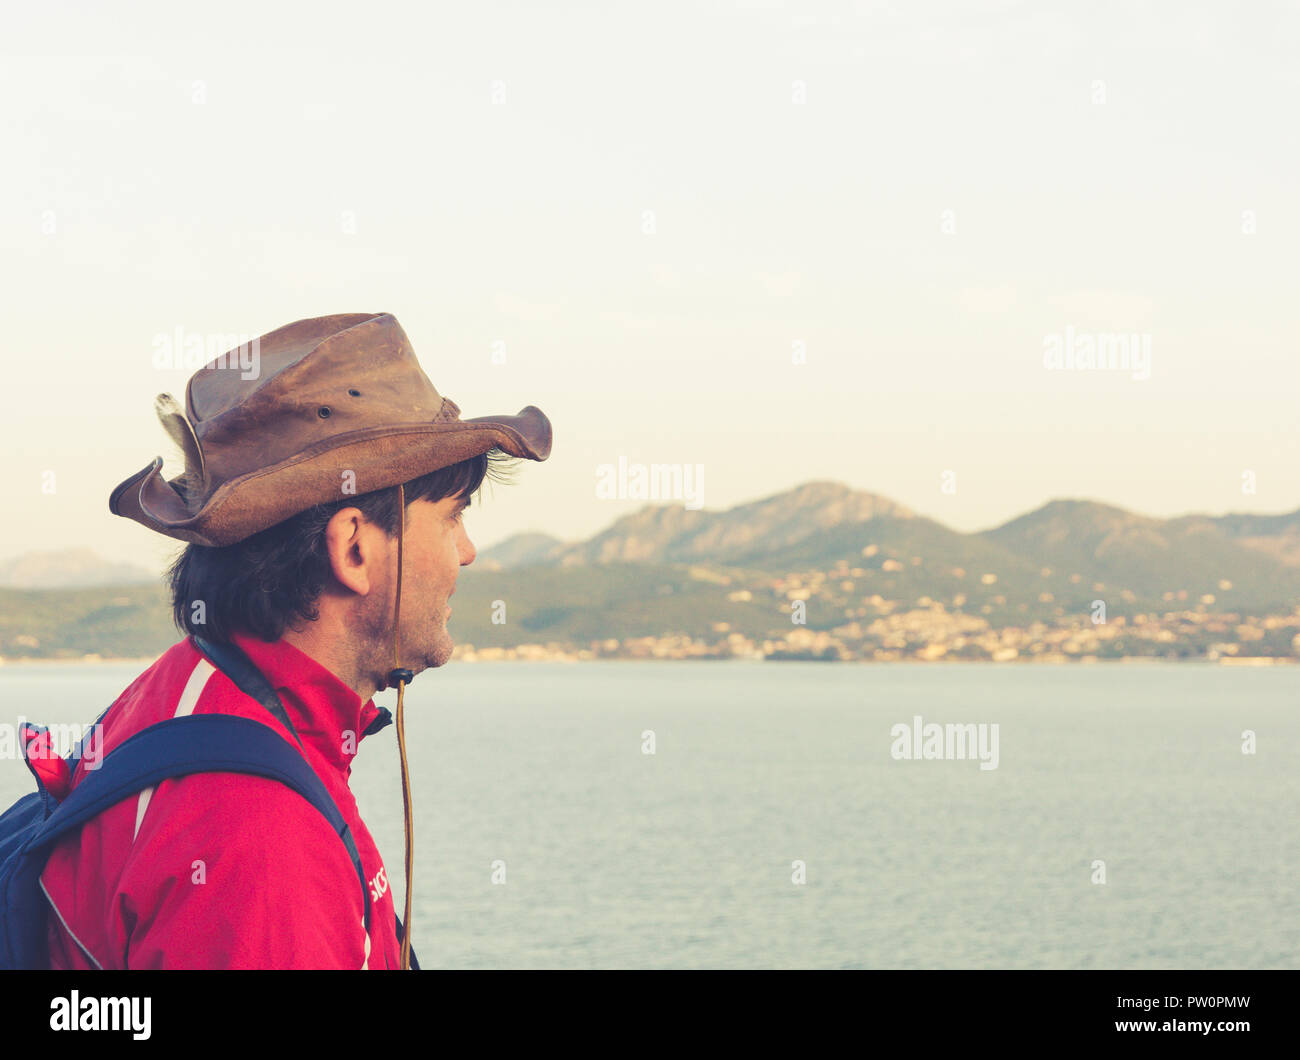 OLBIA, Sardinia, Italy - april 29, 2018: tourist on cruise ship looks at the city of Olbia, Island of Sardinia, Italy - Stock Image